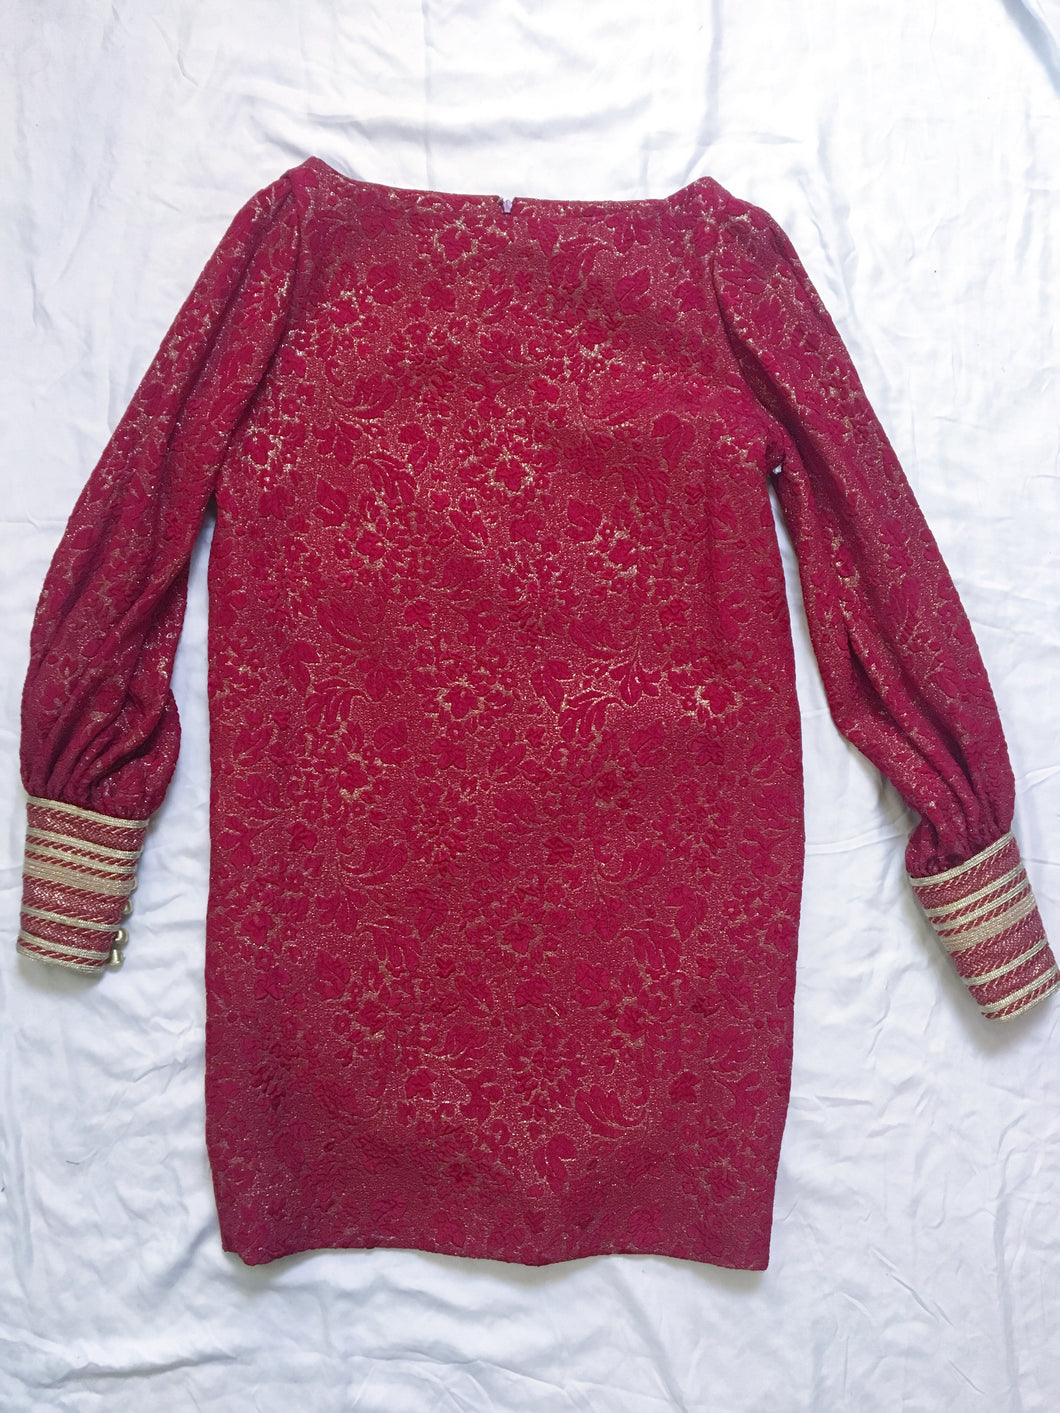 Vintage Carolyne Roehm Dress - Red/Gold